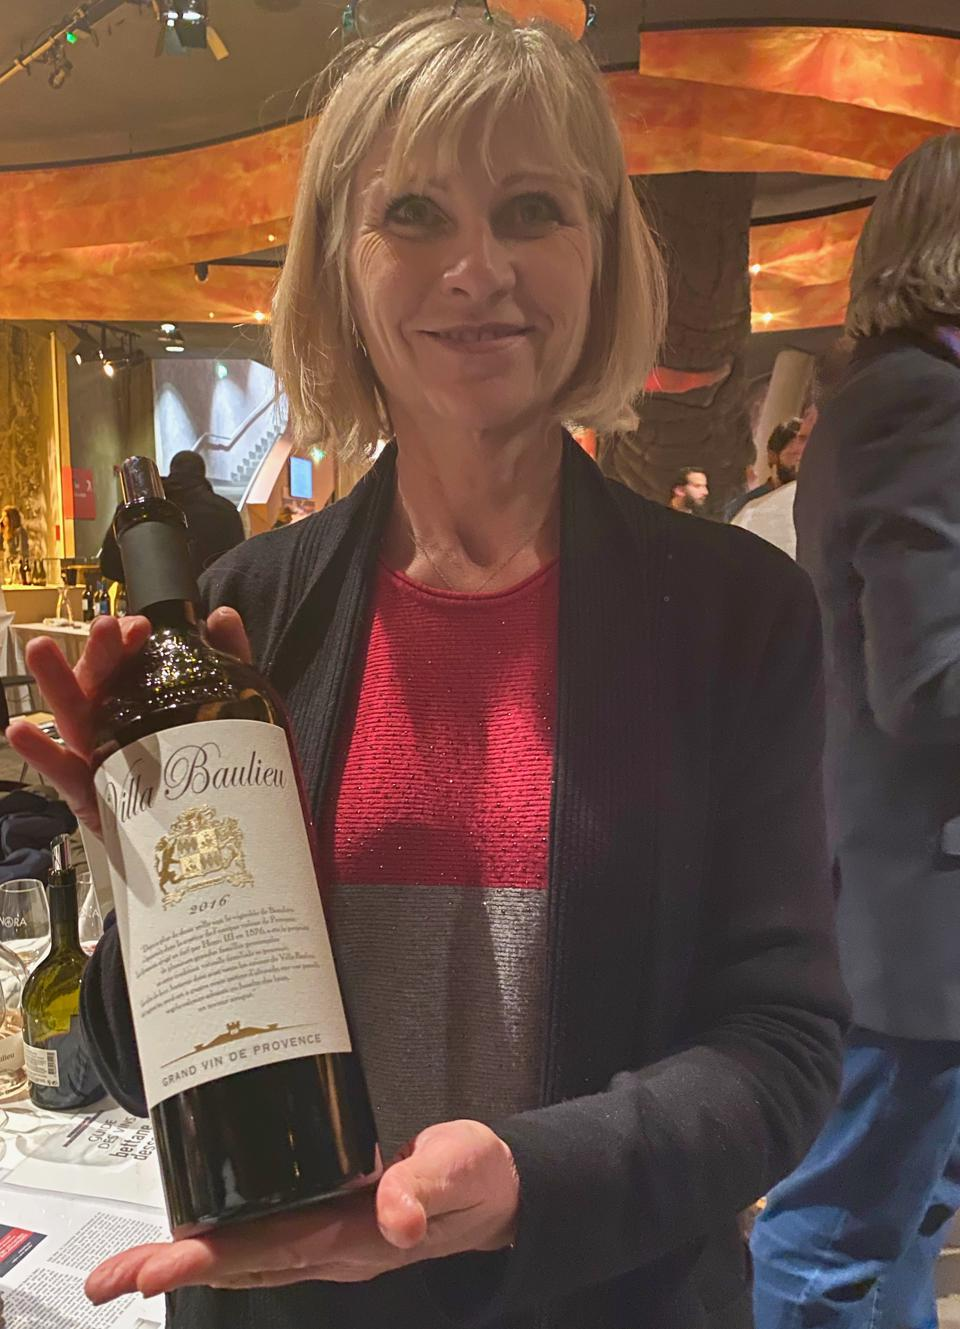 Nadine Cattanea of Villa Baulieu wines from France